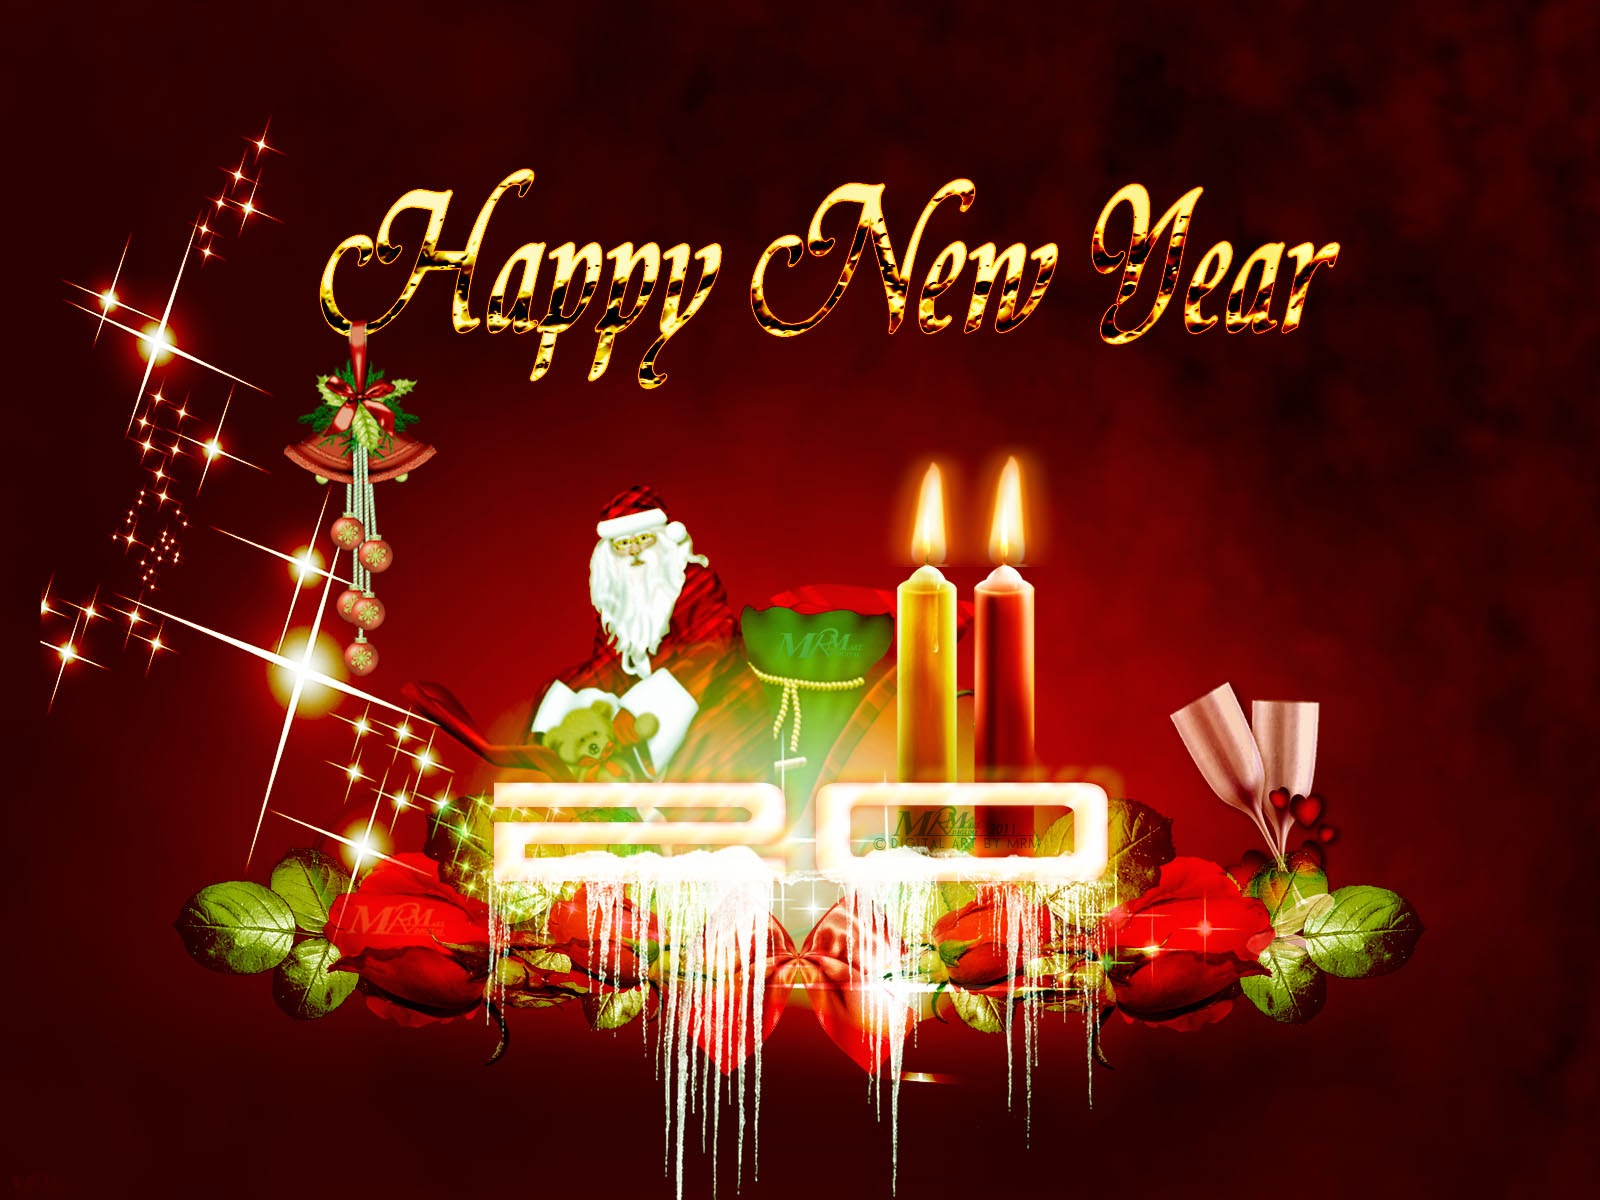 Free happy new year ecards greeting cards 2015 merry christmas free happy new year ecards greeting cards 2015 m4hsunfo